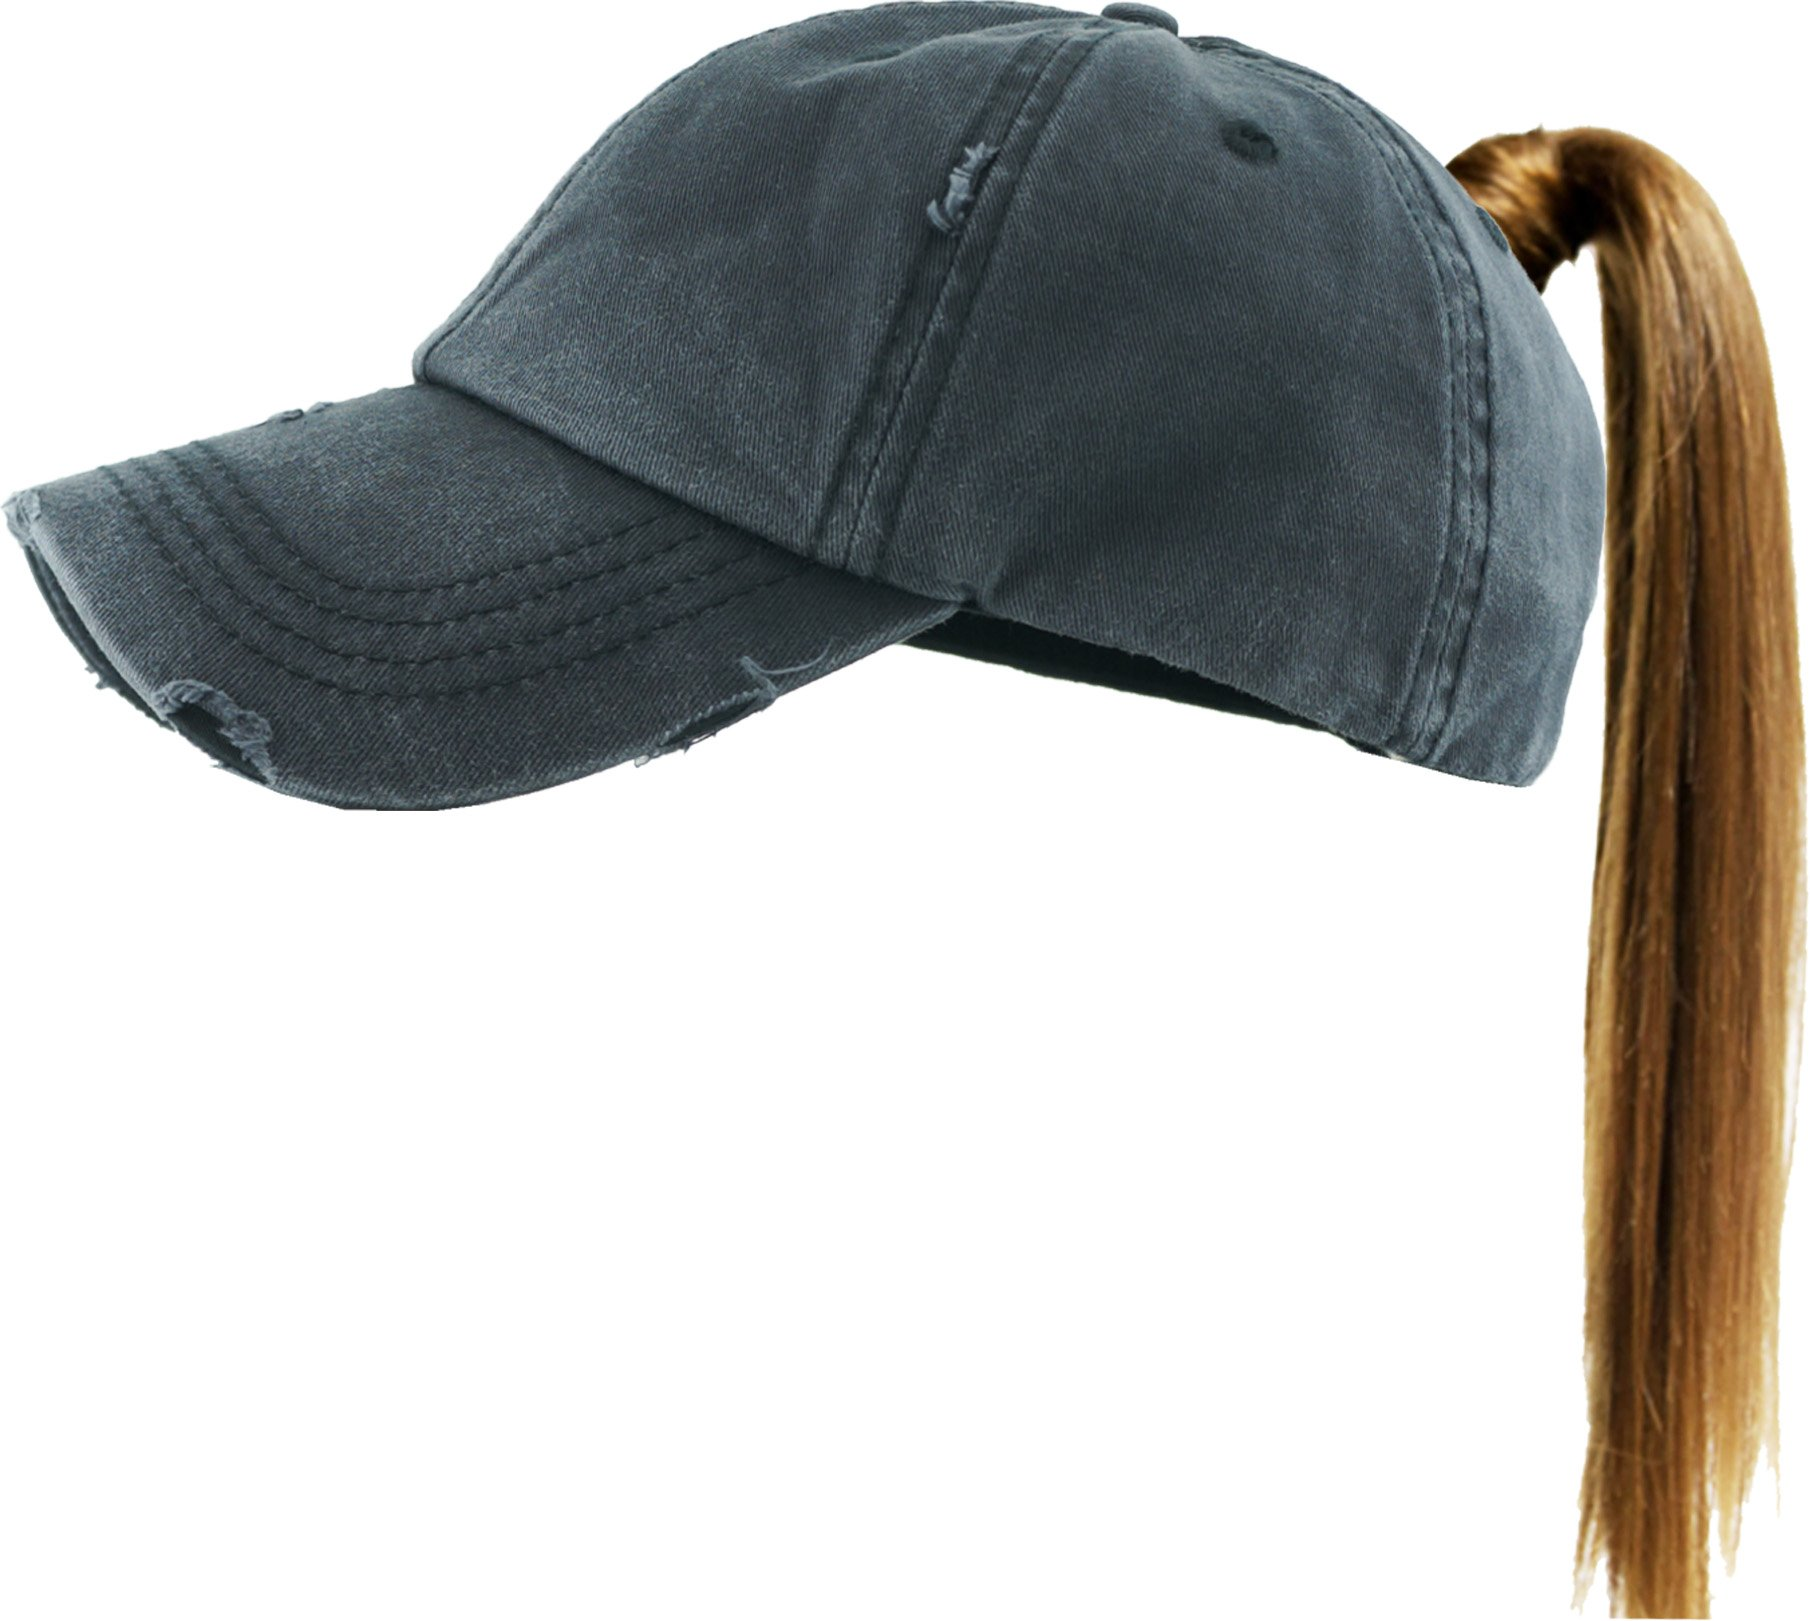 KBETHOS PONY-001 BLK Ponytail Messy High Bun Headwear Adjustable Cotton Trucker Mesh Hat Baseball Cap